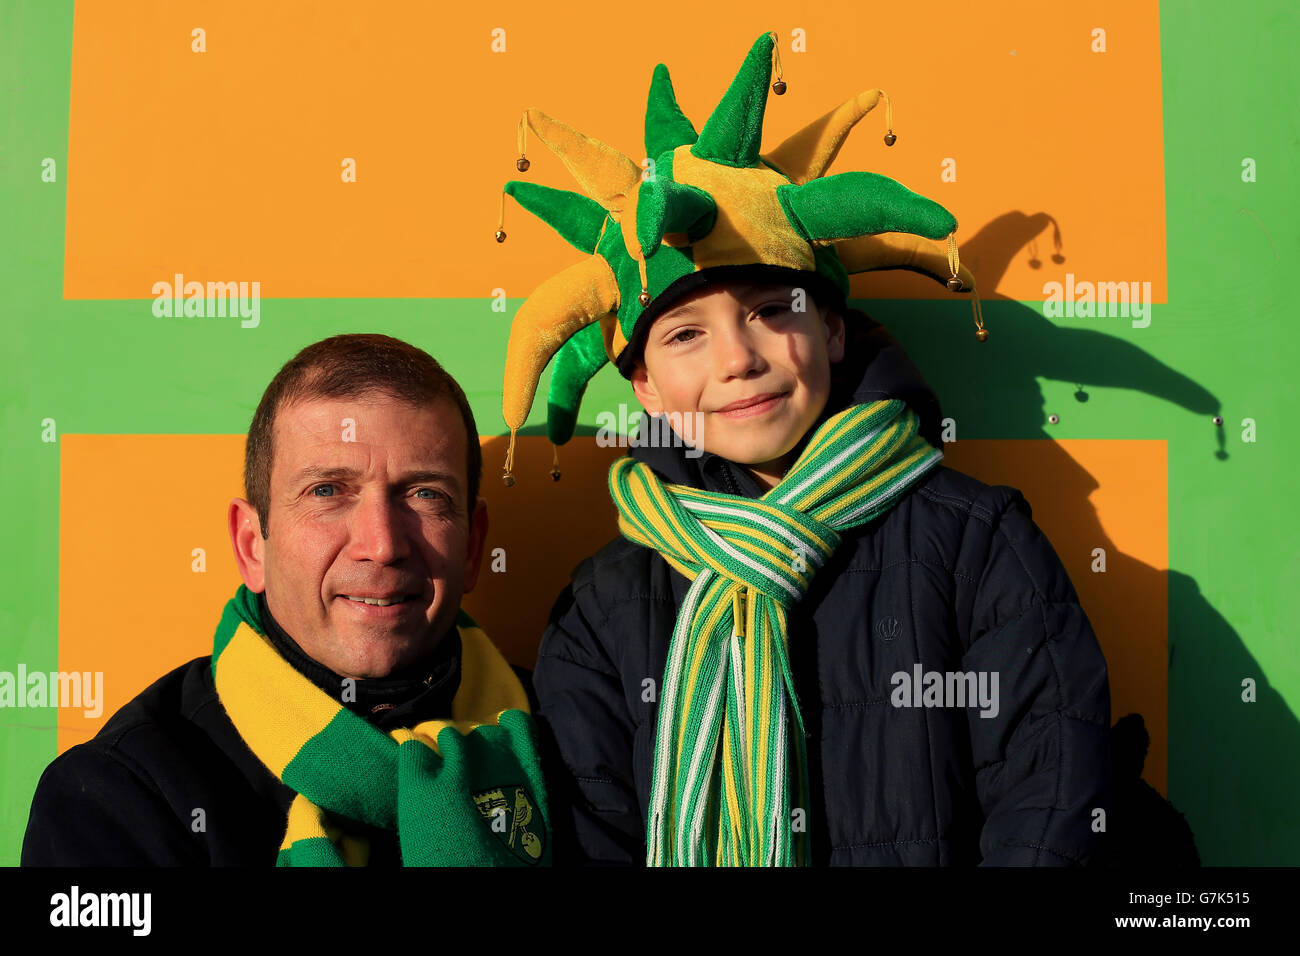 Football Supporters Norwich Green and Yellow Jester Hat